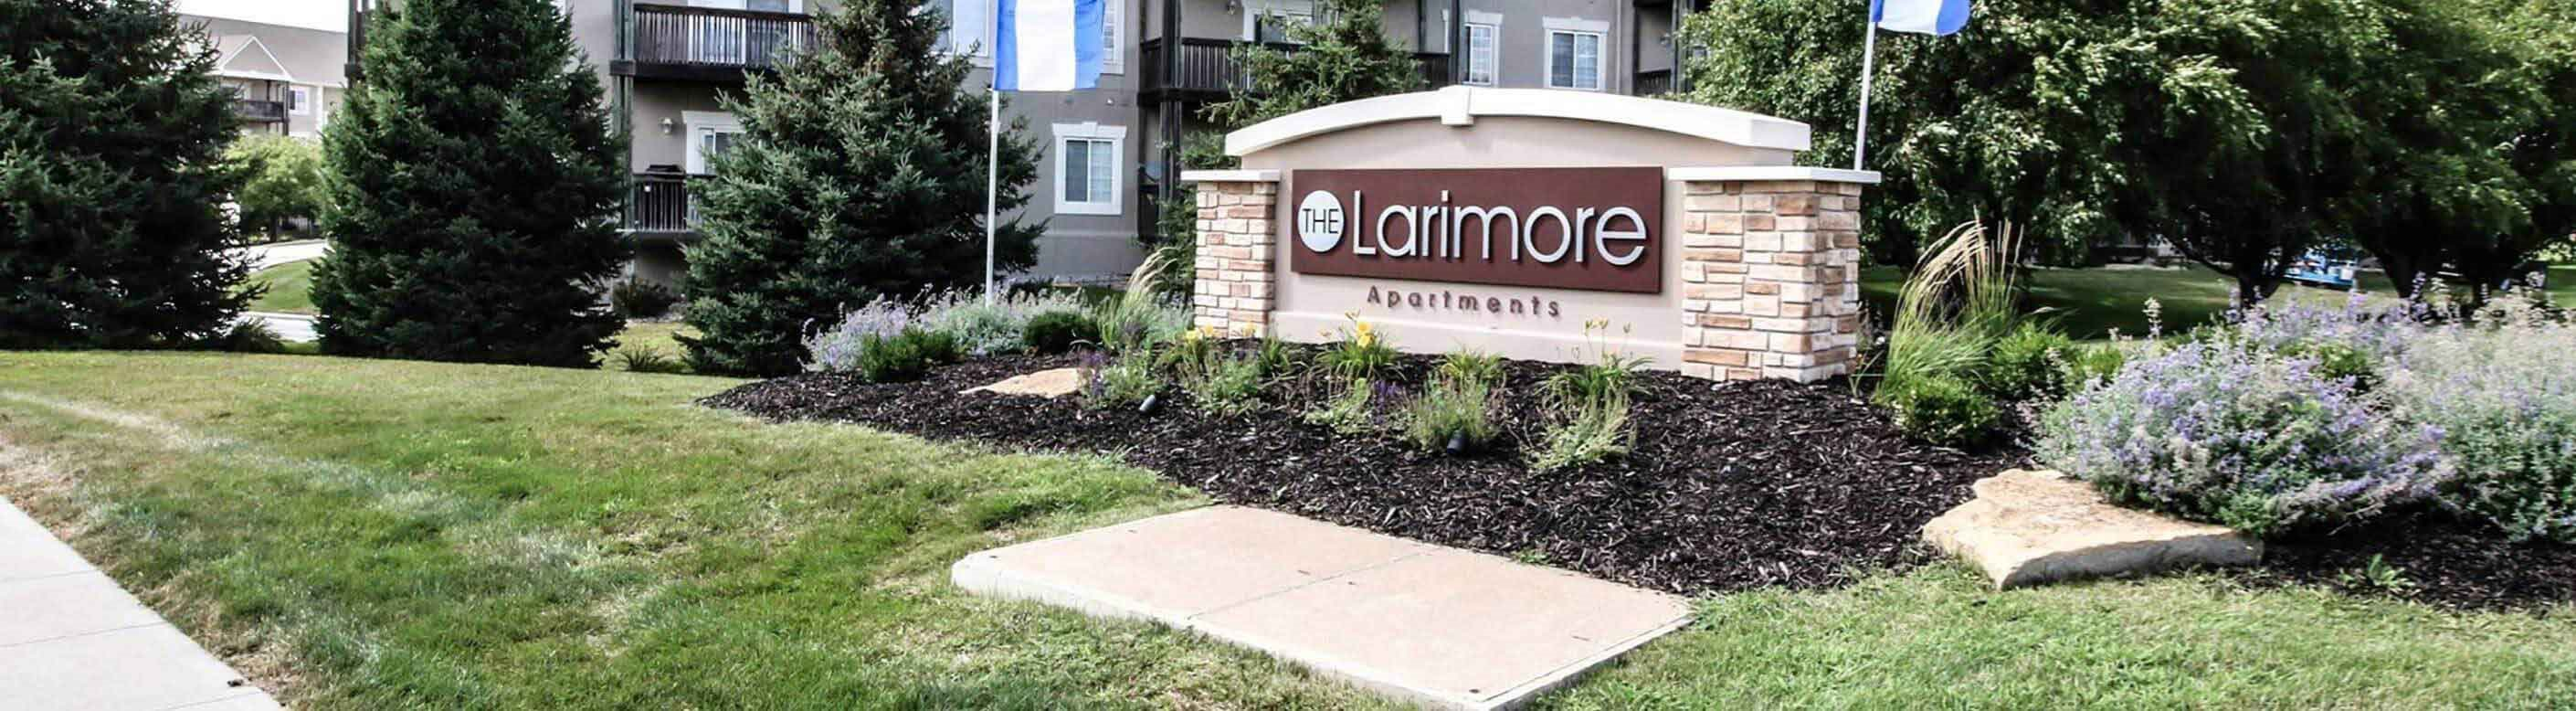 Solid Construction, at Larimore, The, 13302 Larimore Ave, Omaha, NE 68164